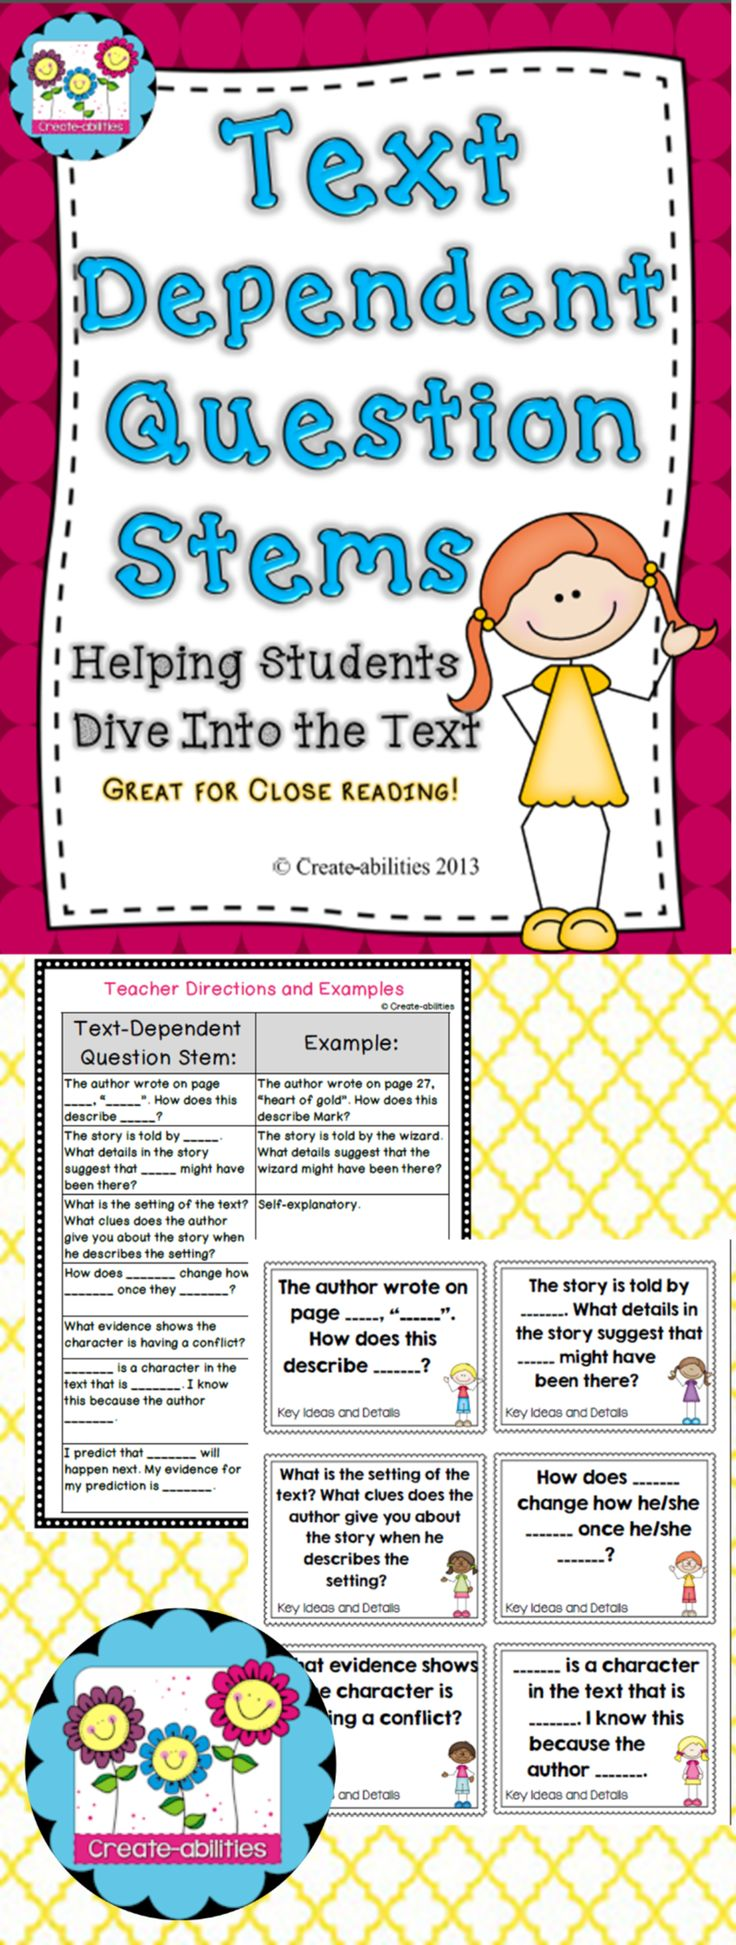 Text-dependent question stems. Great for close reading, literature circles, guided reading and more! $ #textdependentquestions #createabilities #reading